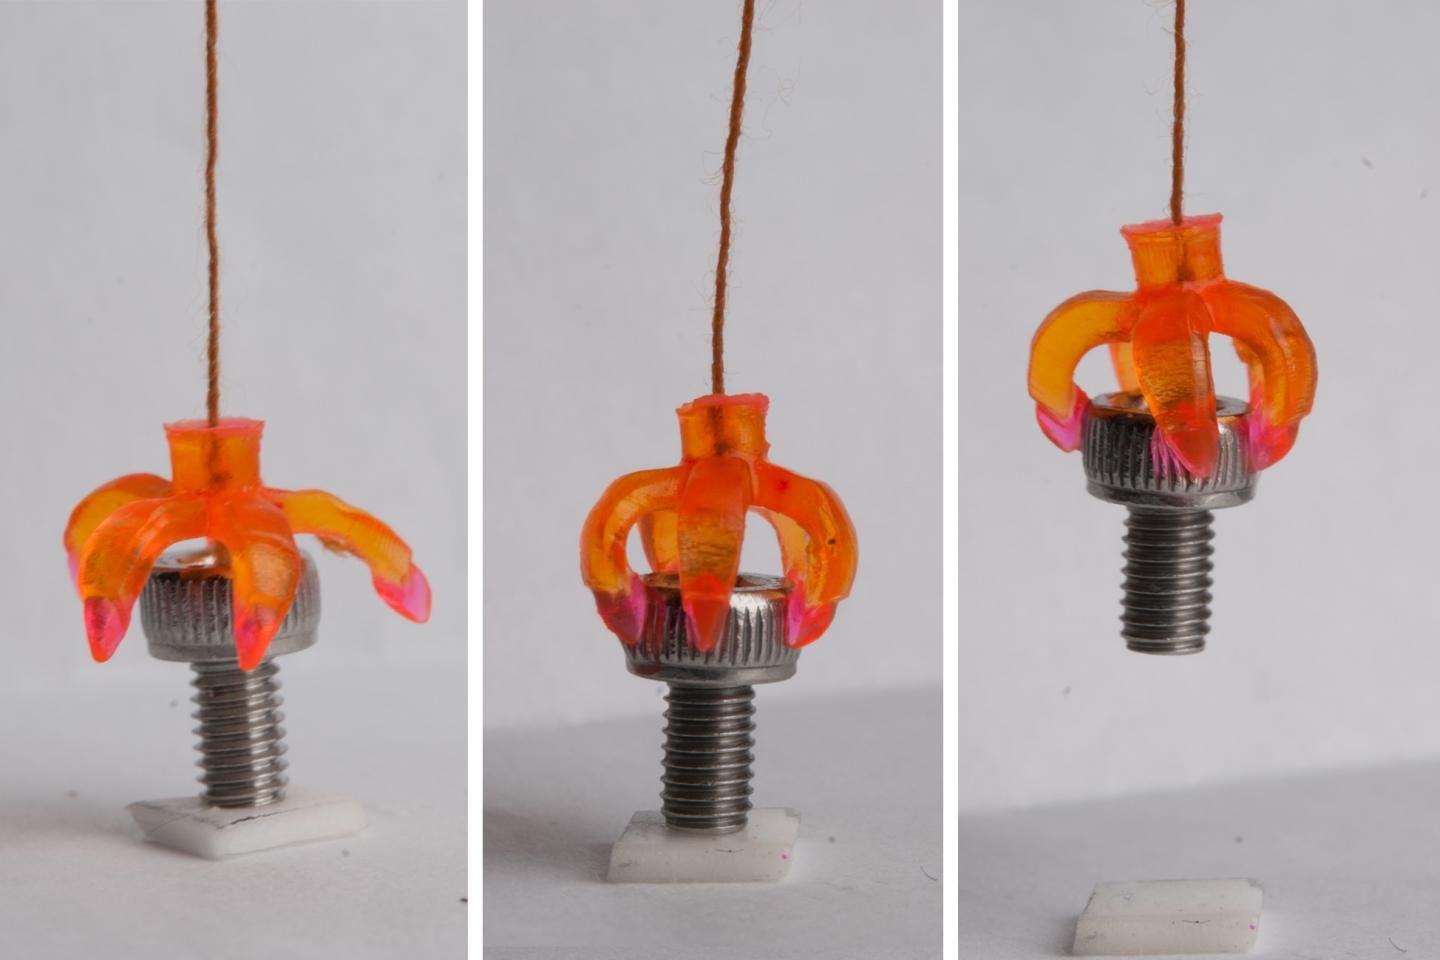 D Print These 3d Printed Objects Immediately Revert To Original Position